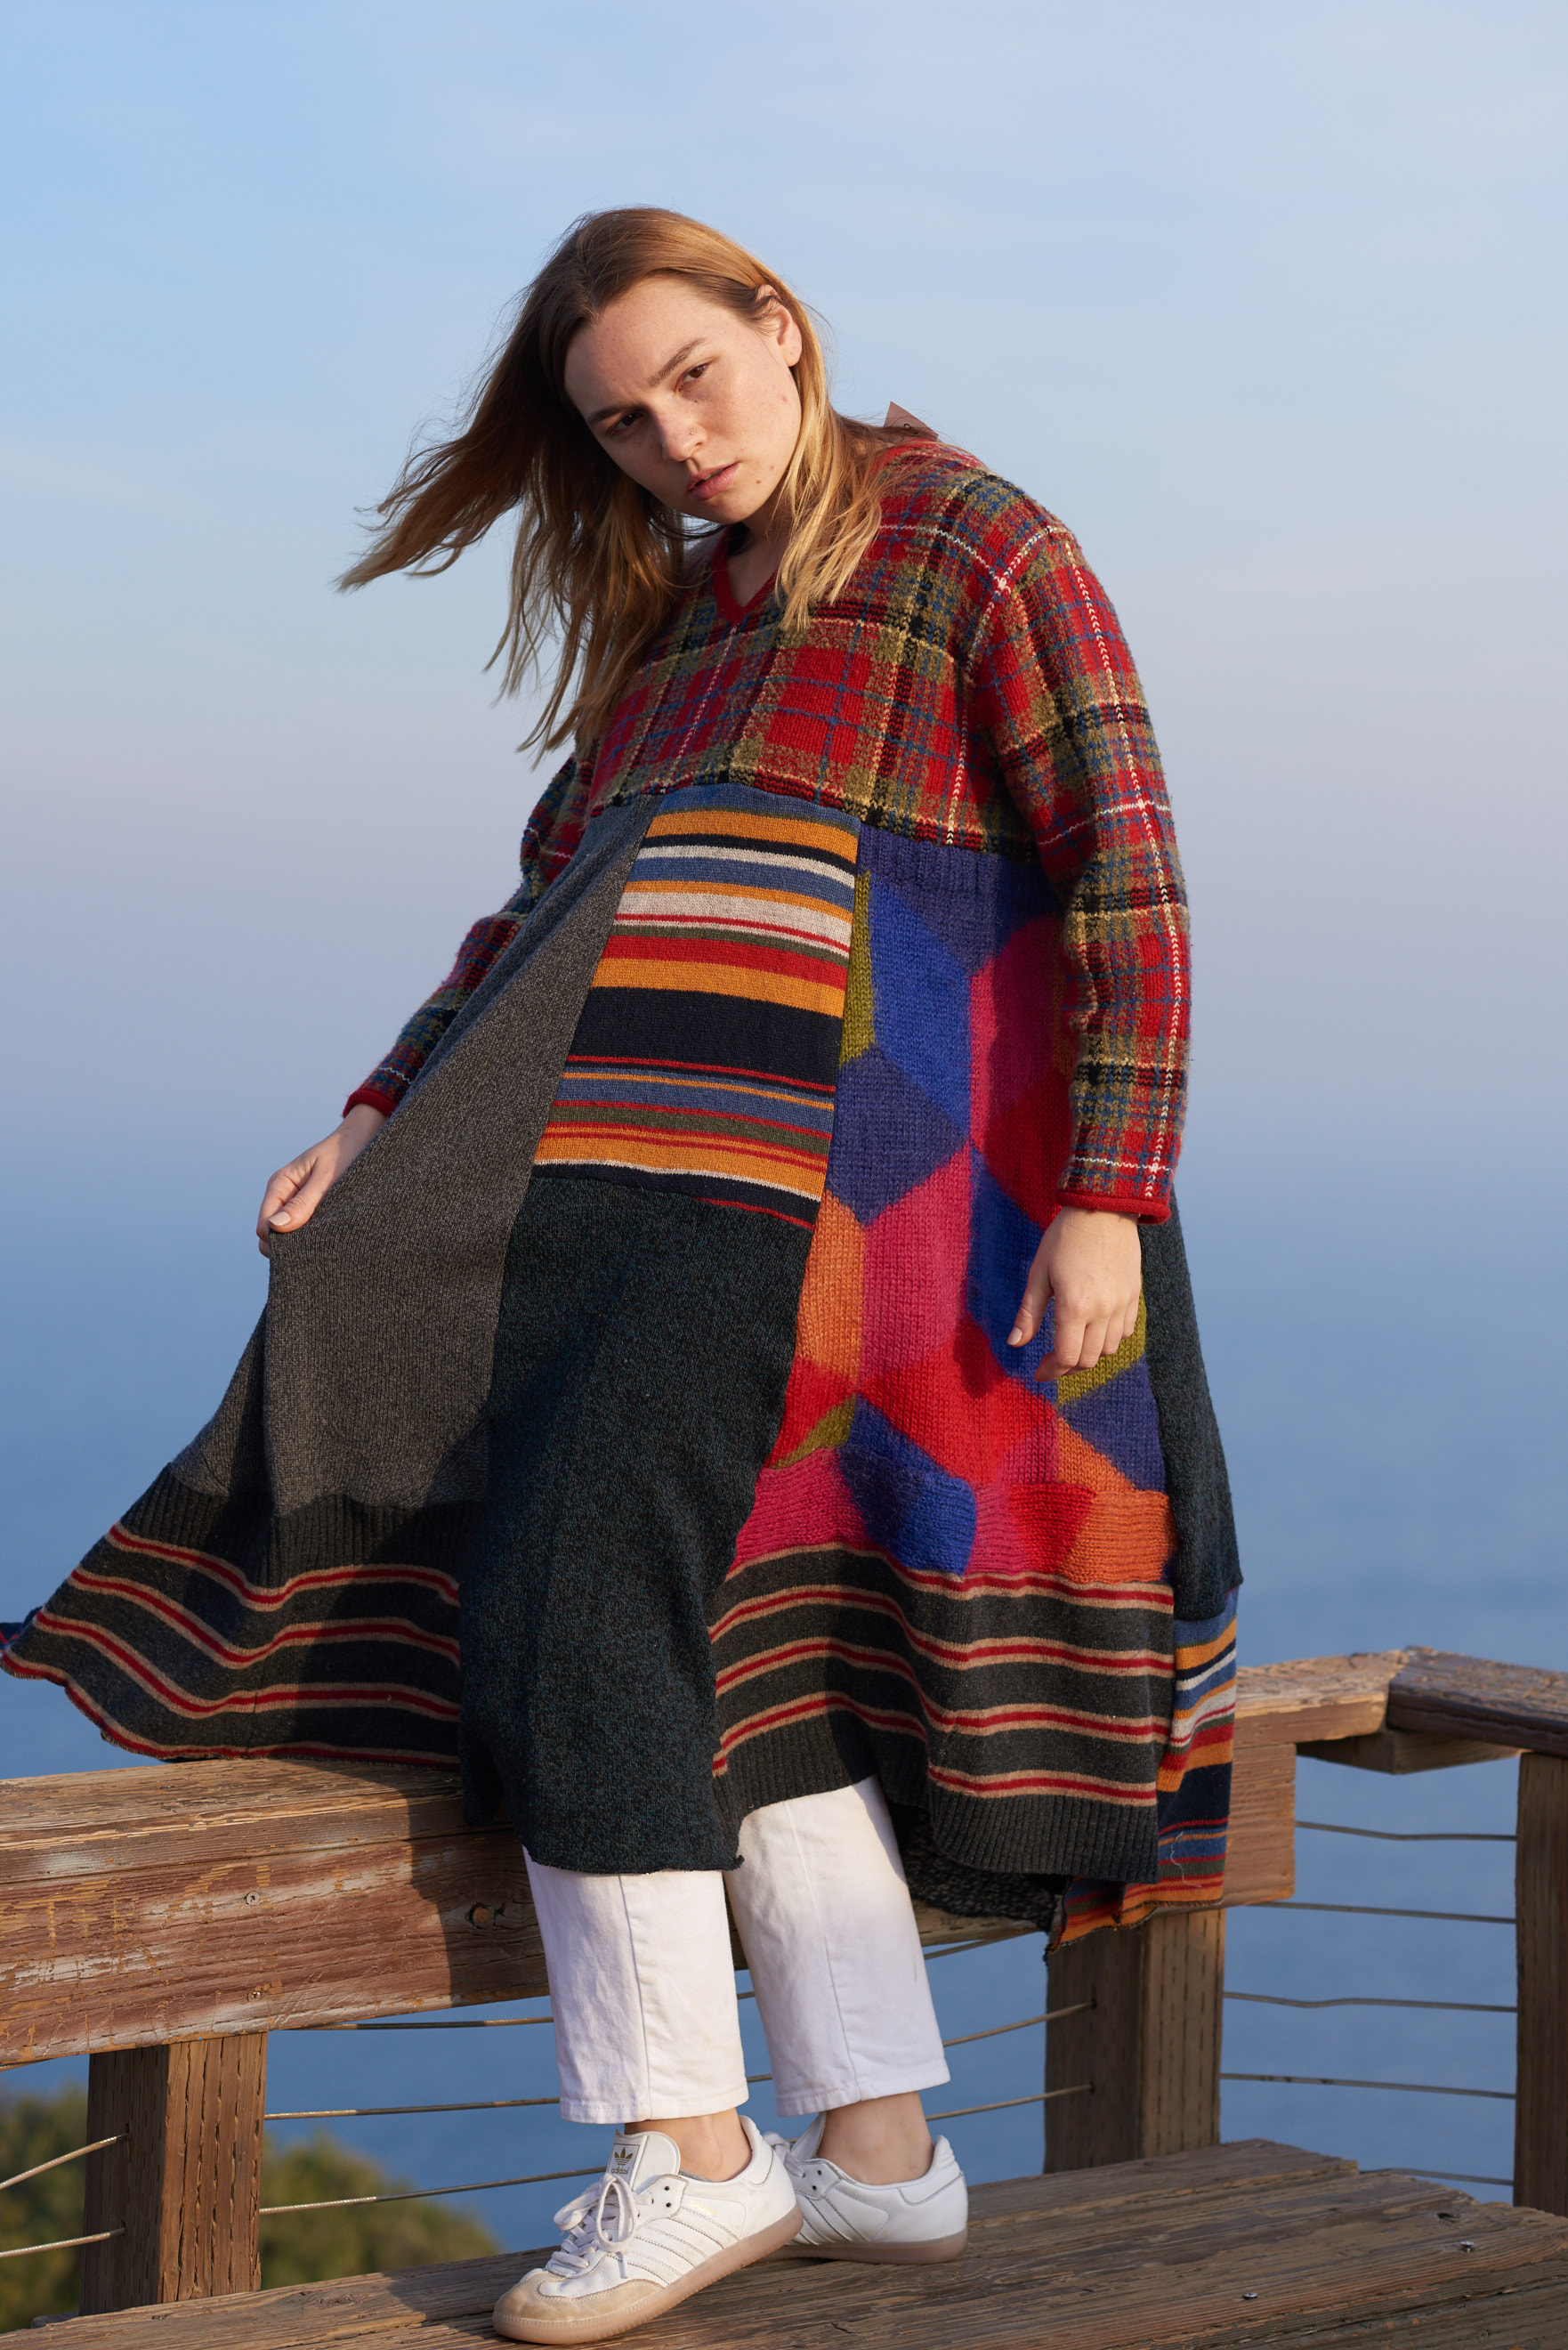 Re-Constructed Wool and Cashmere Knit Sweater Dress